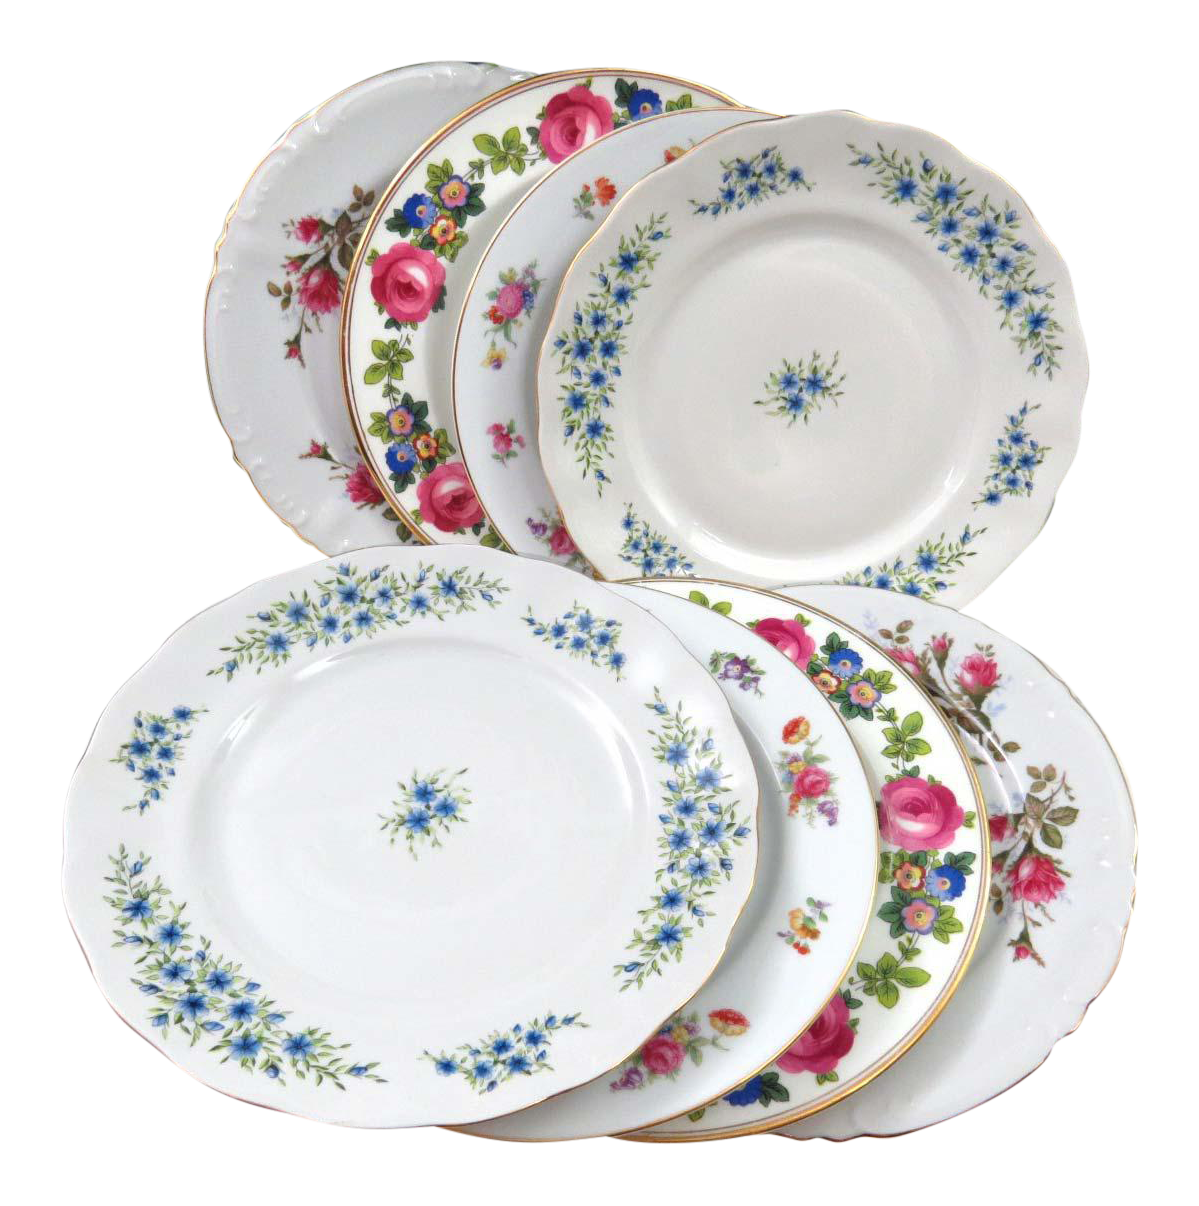 sc 1 st  Chairish & Mismatched Vintage Dinner Plates - Set of 8 | Chairish